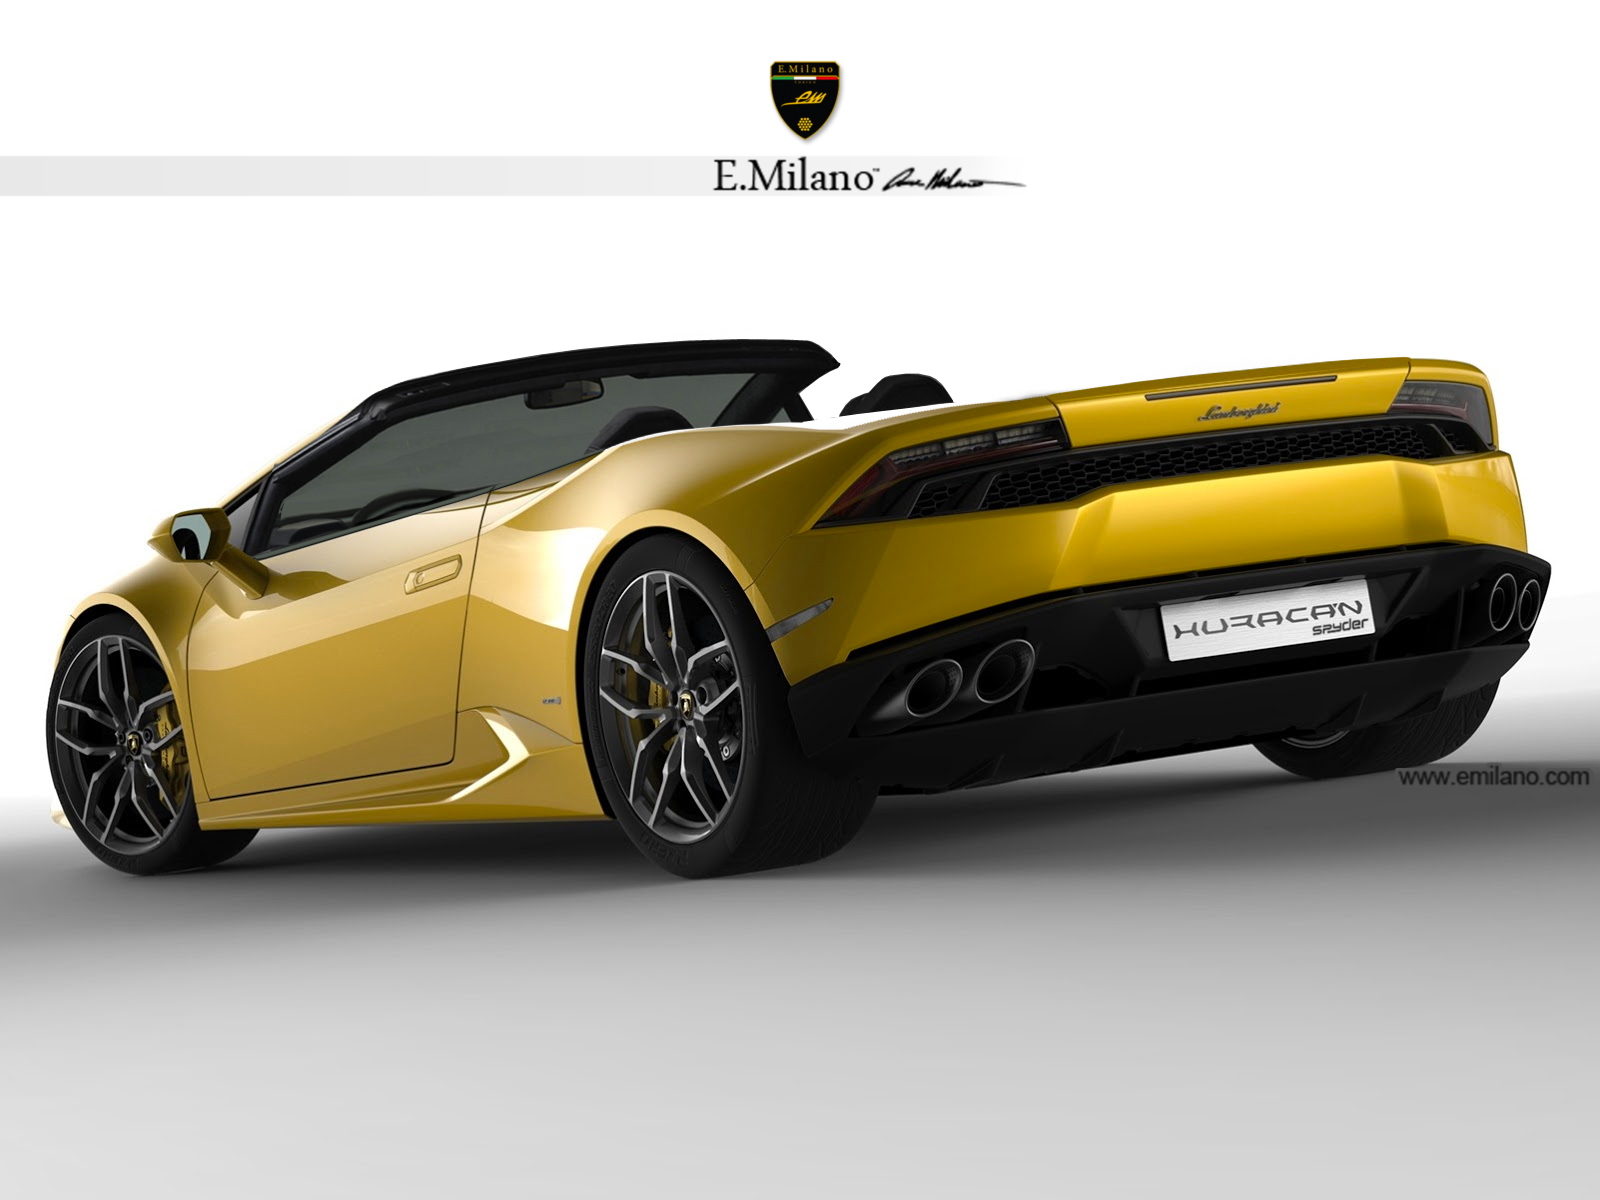 render 2015 lamborghini huracan lp 610 4 spyder by evren milano gtspirit. Black Bedroom Furniture Sets. Home Design Ideas